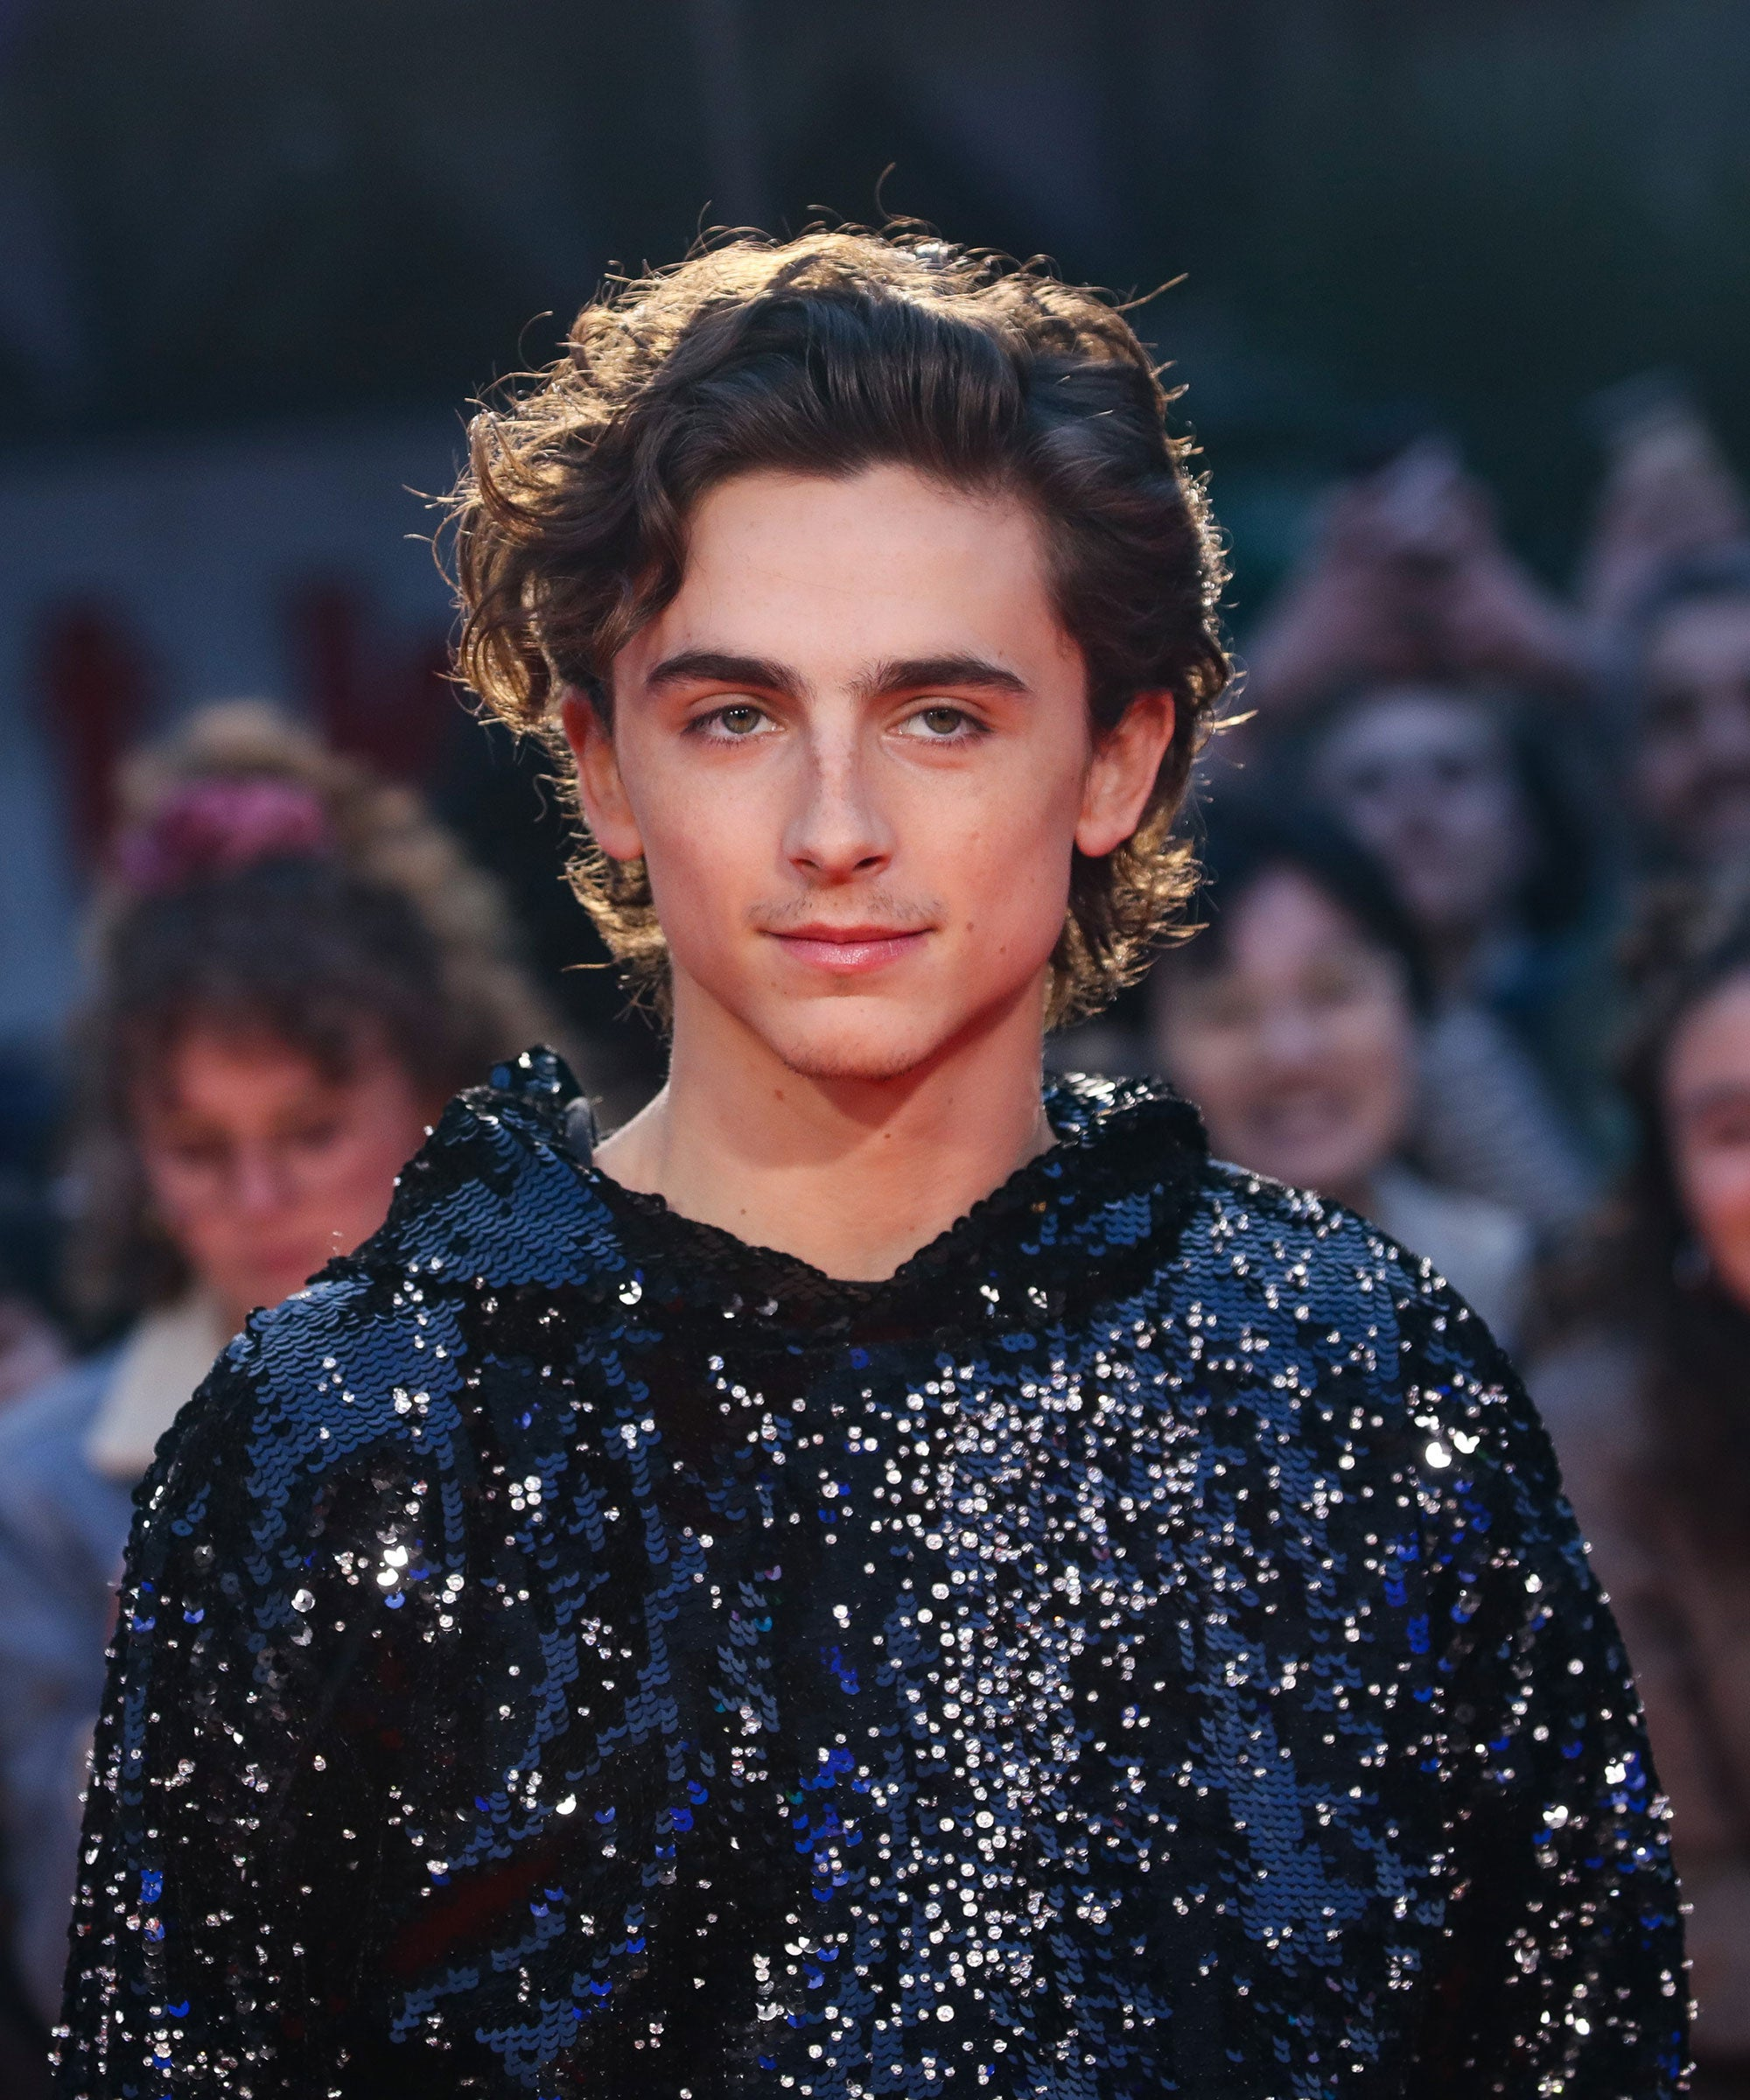 Did Timothee Chalamet And Lily Rose Depp Breakup